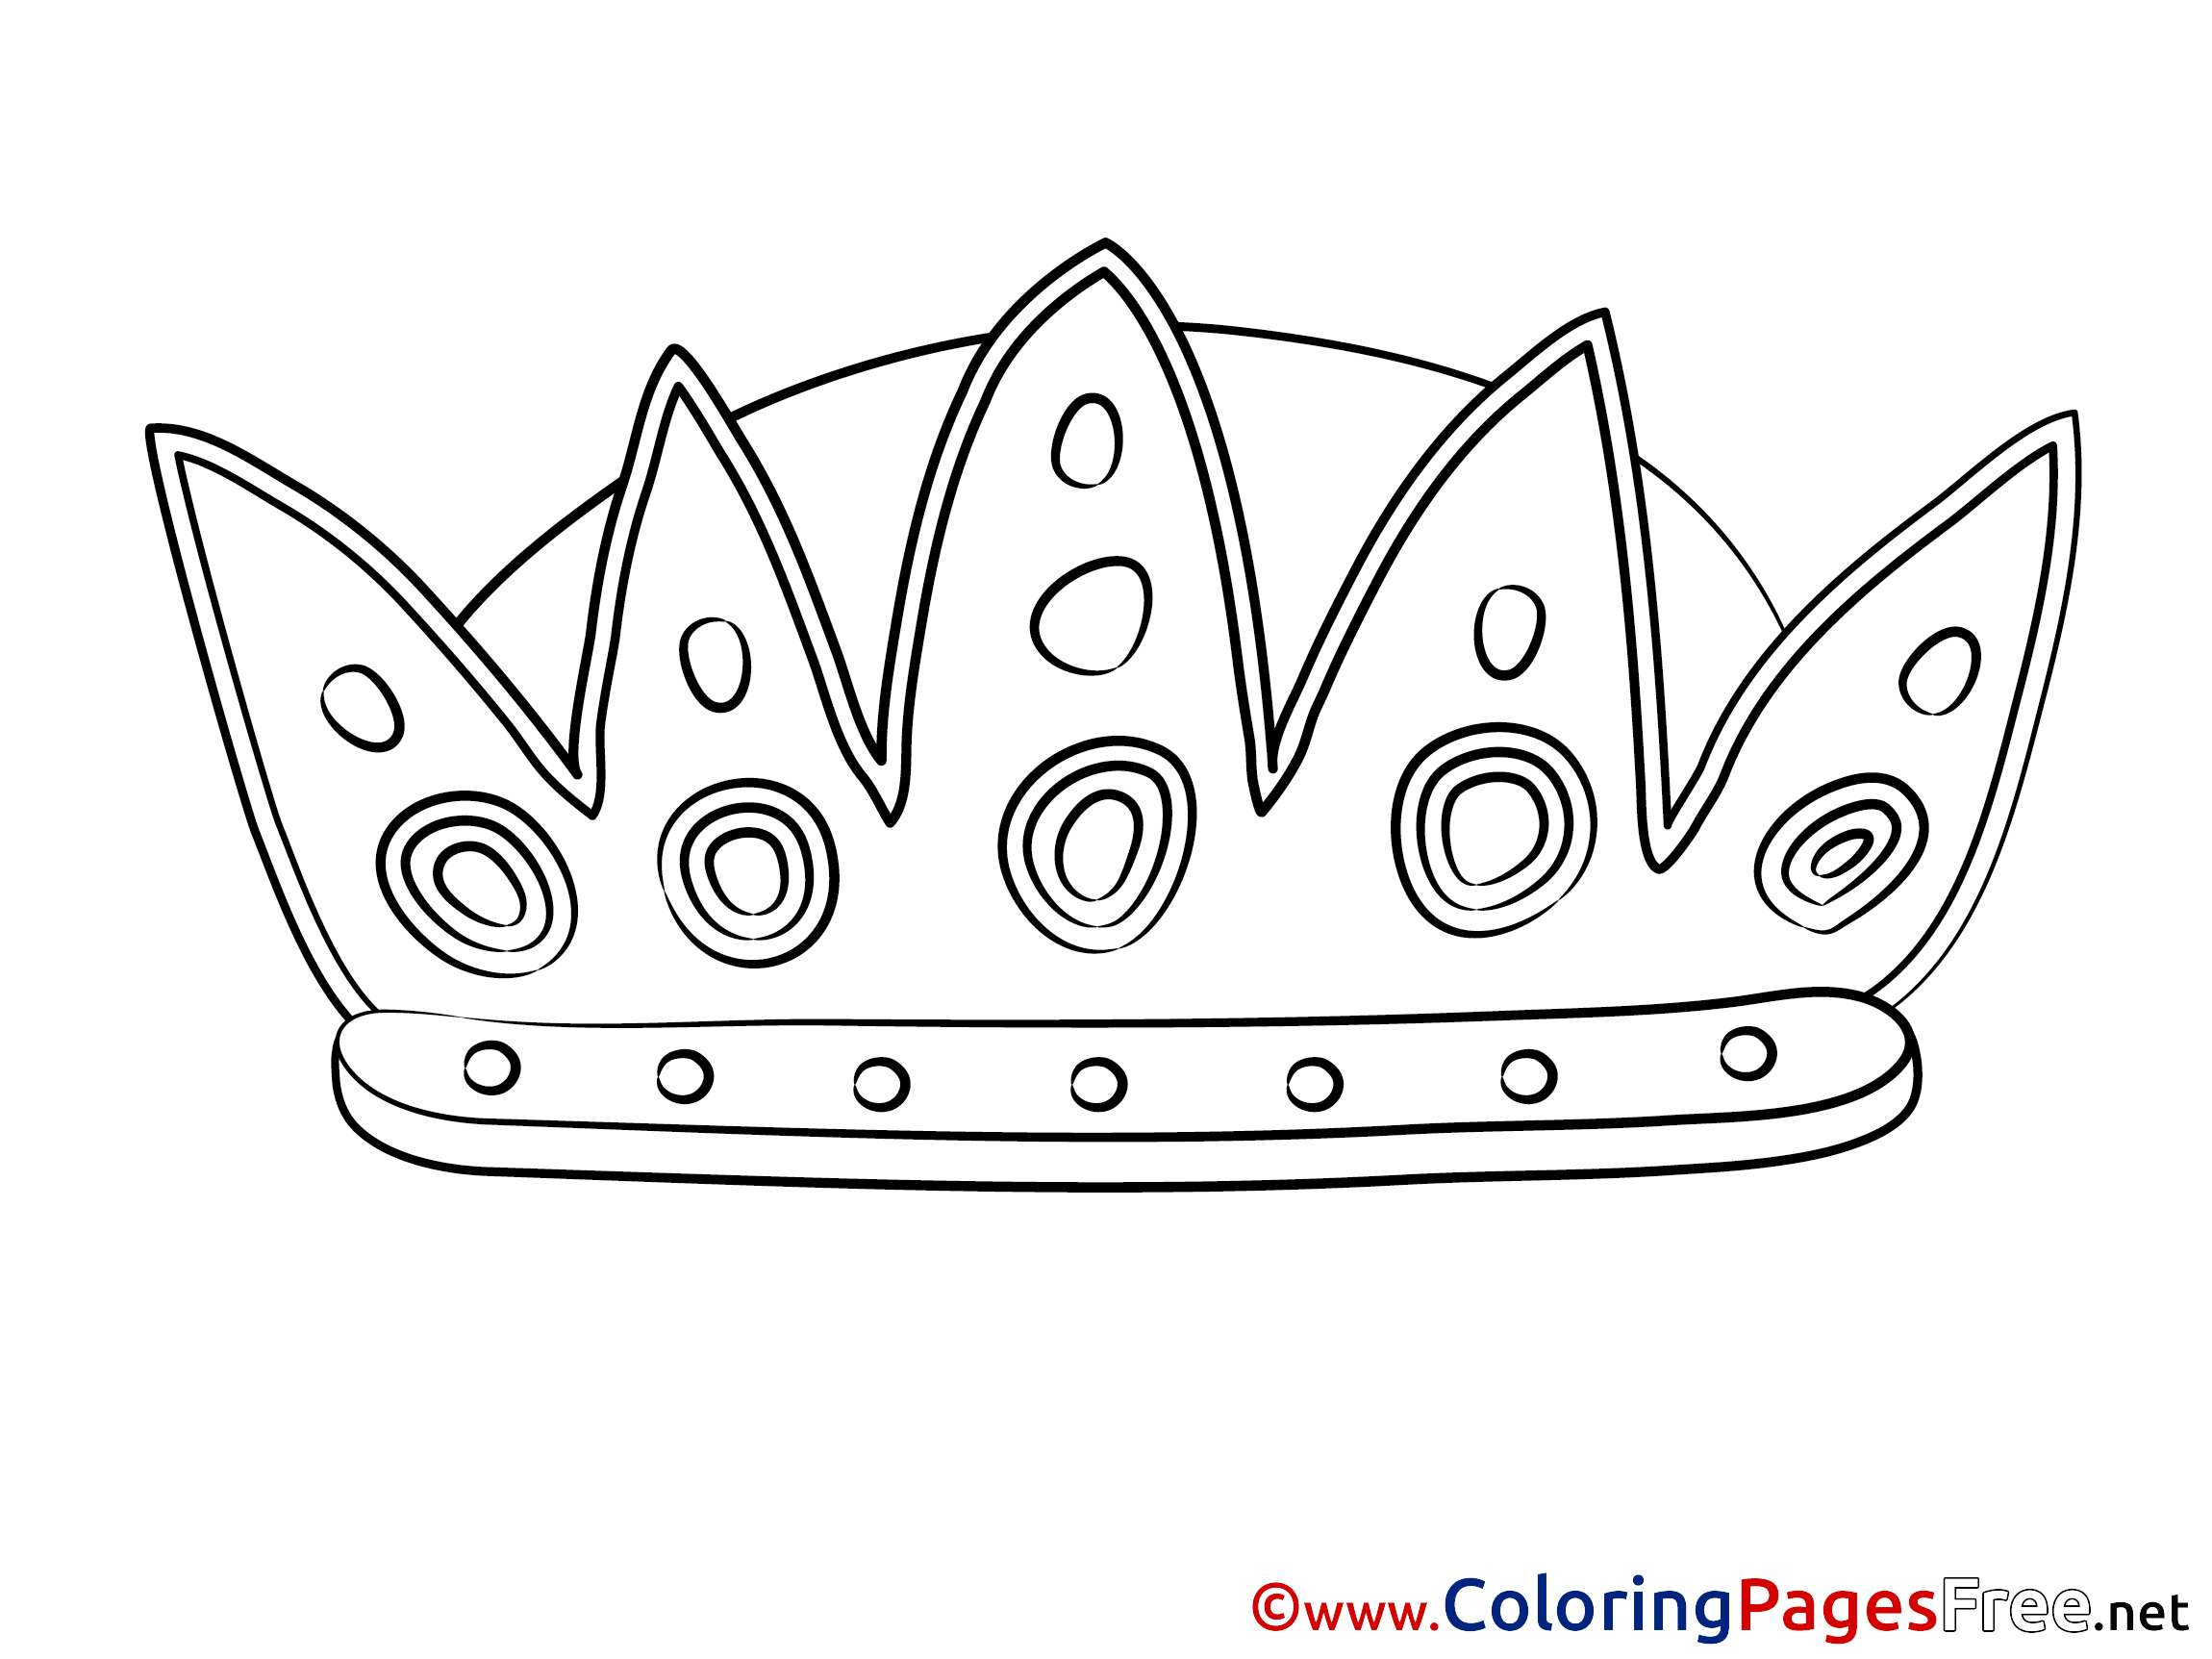 Corona Coloring Pages for free